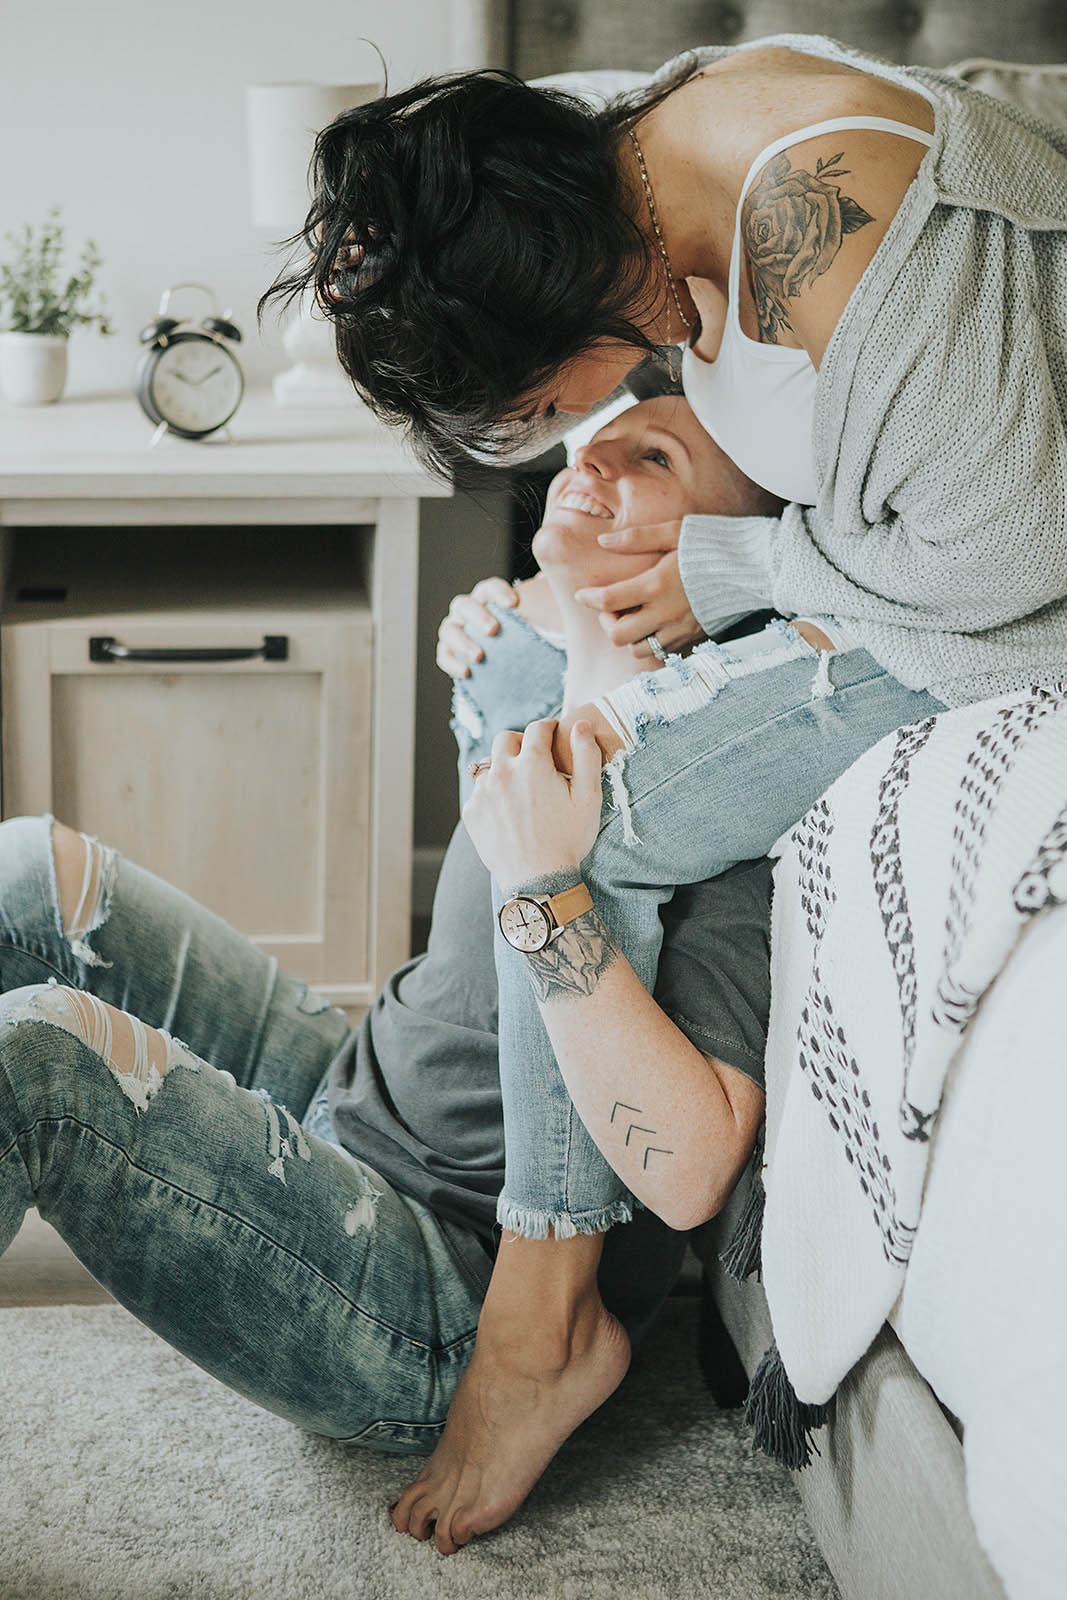 Unsupportive Family and Parents - Dancing With Her - LGBTQ - Lesbian Love Story